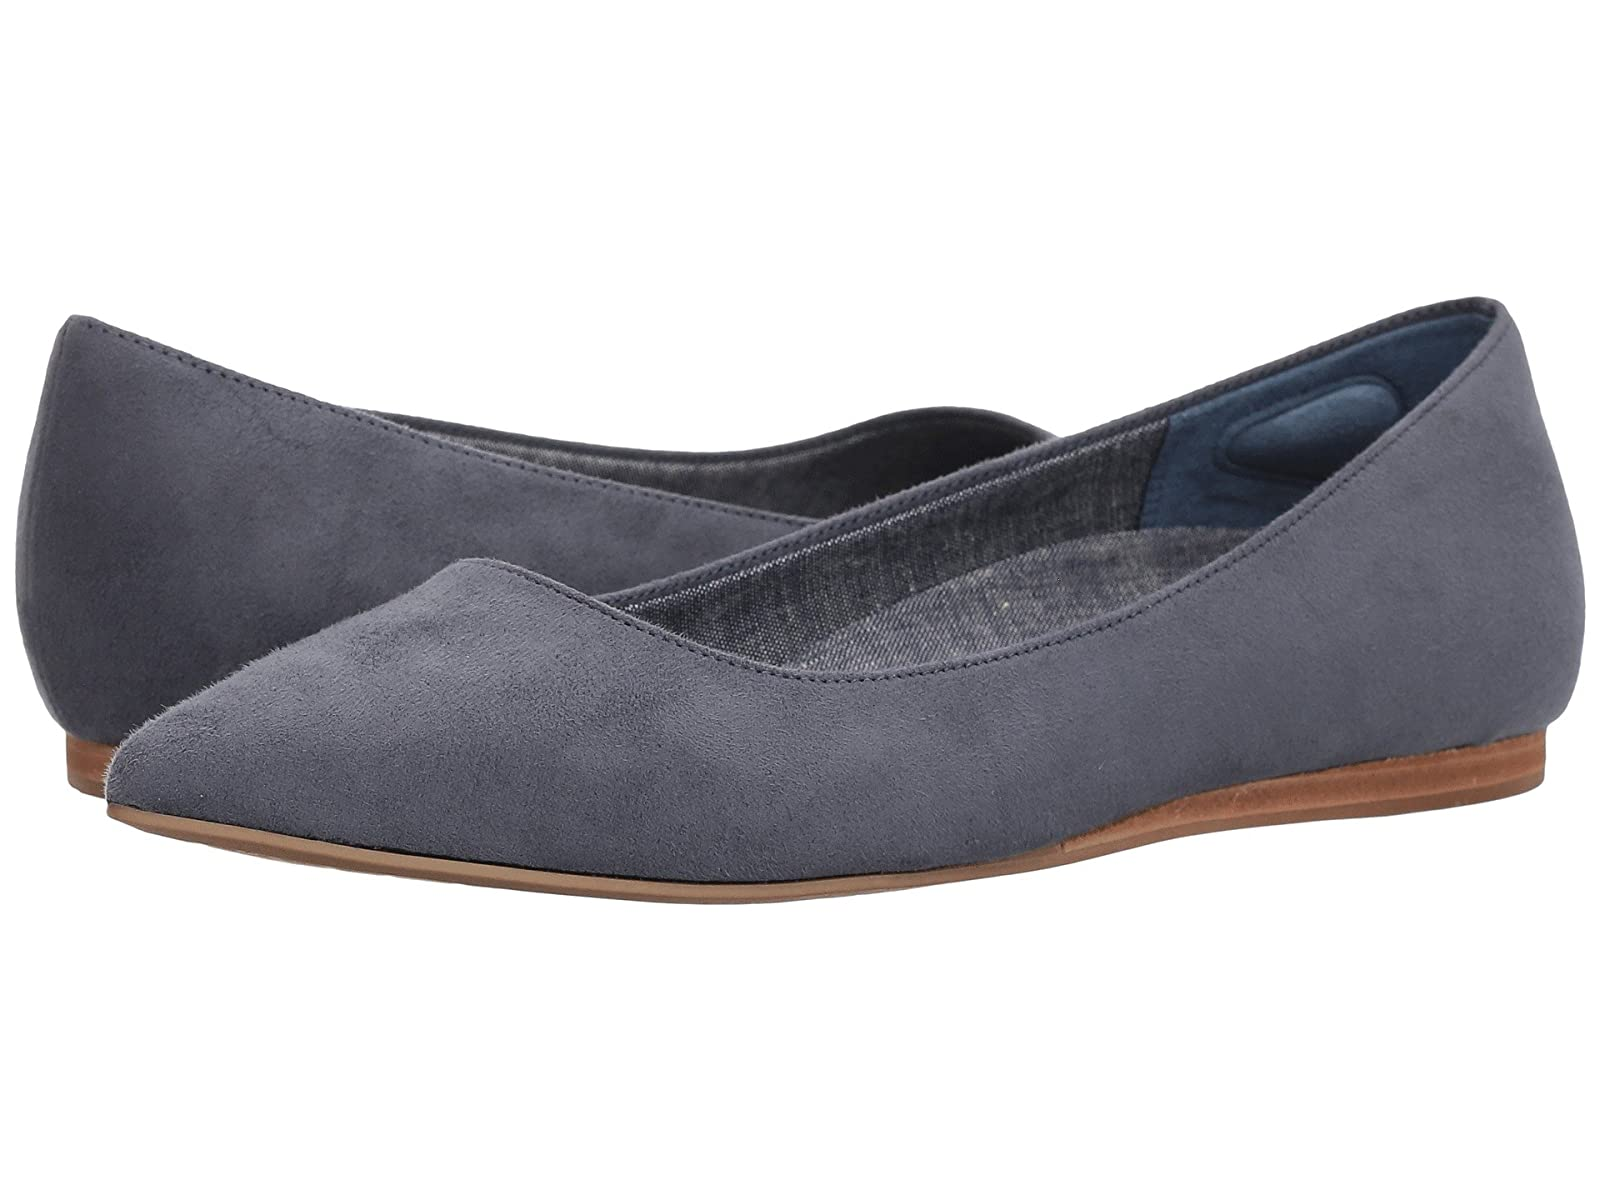 Dr. Scholl's LeaderCheap and distinctive eye-catching shoes